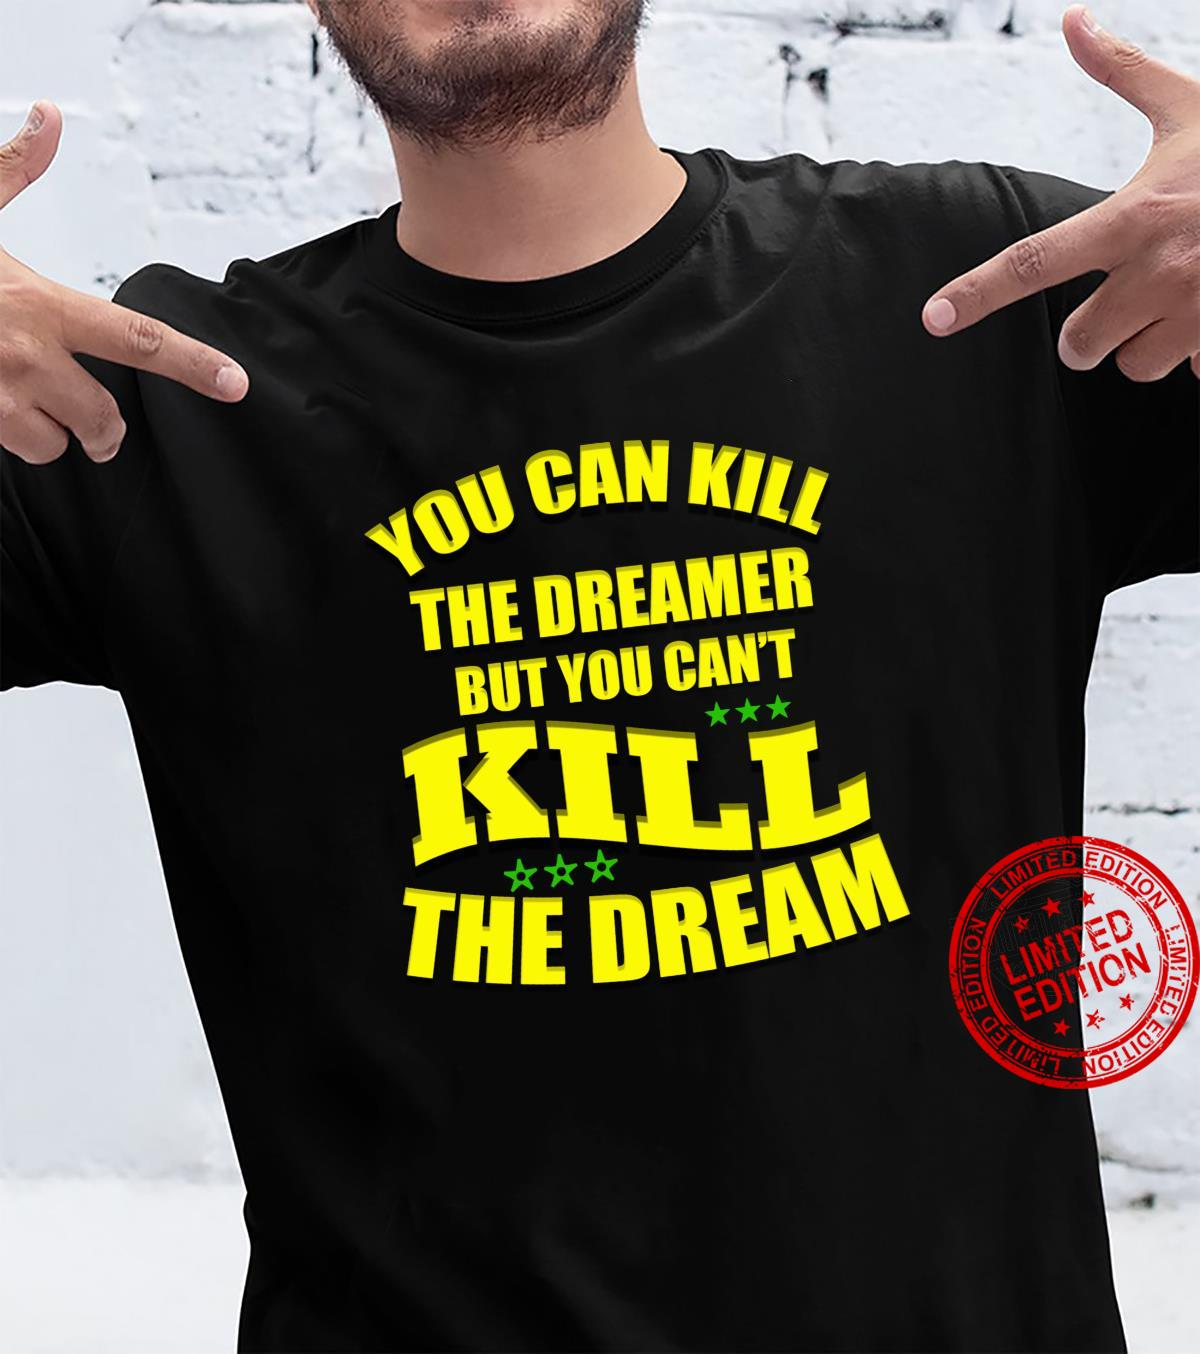 You Can Kill The Dreamer But You Can't Kill The Dream Shirt